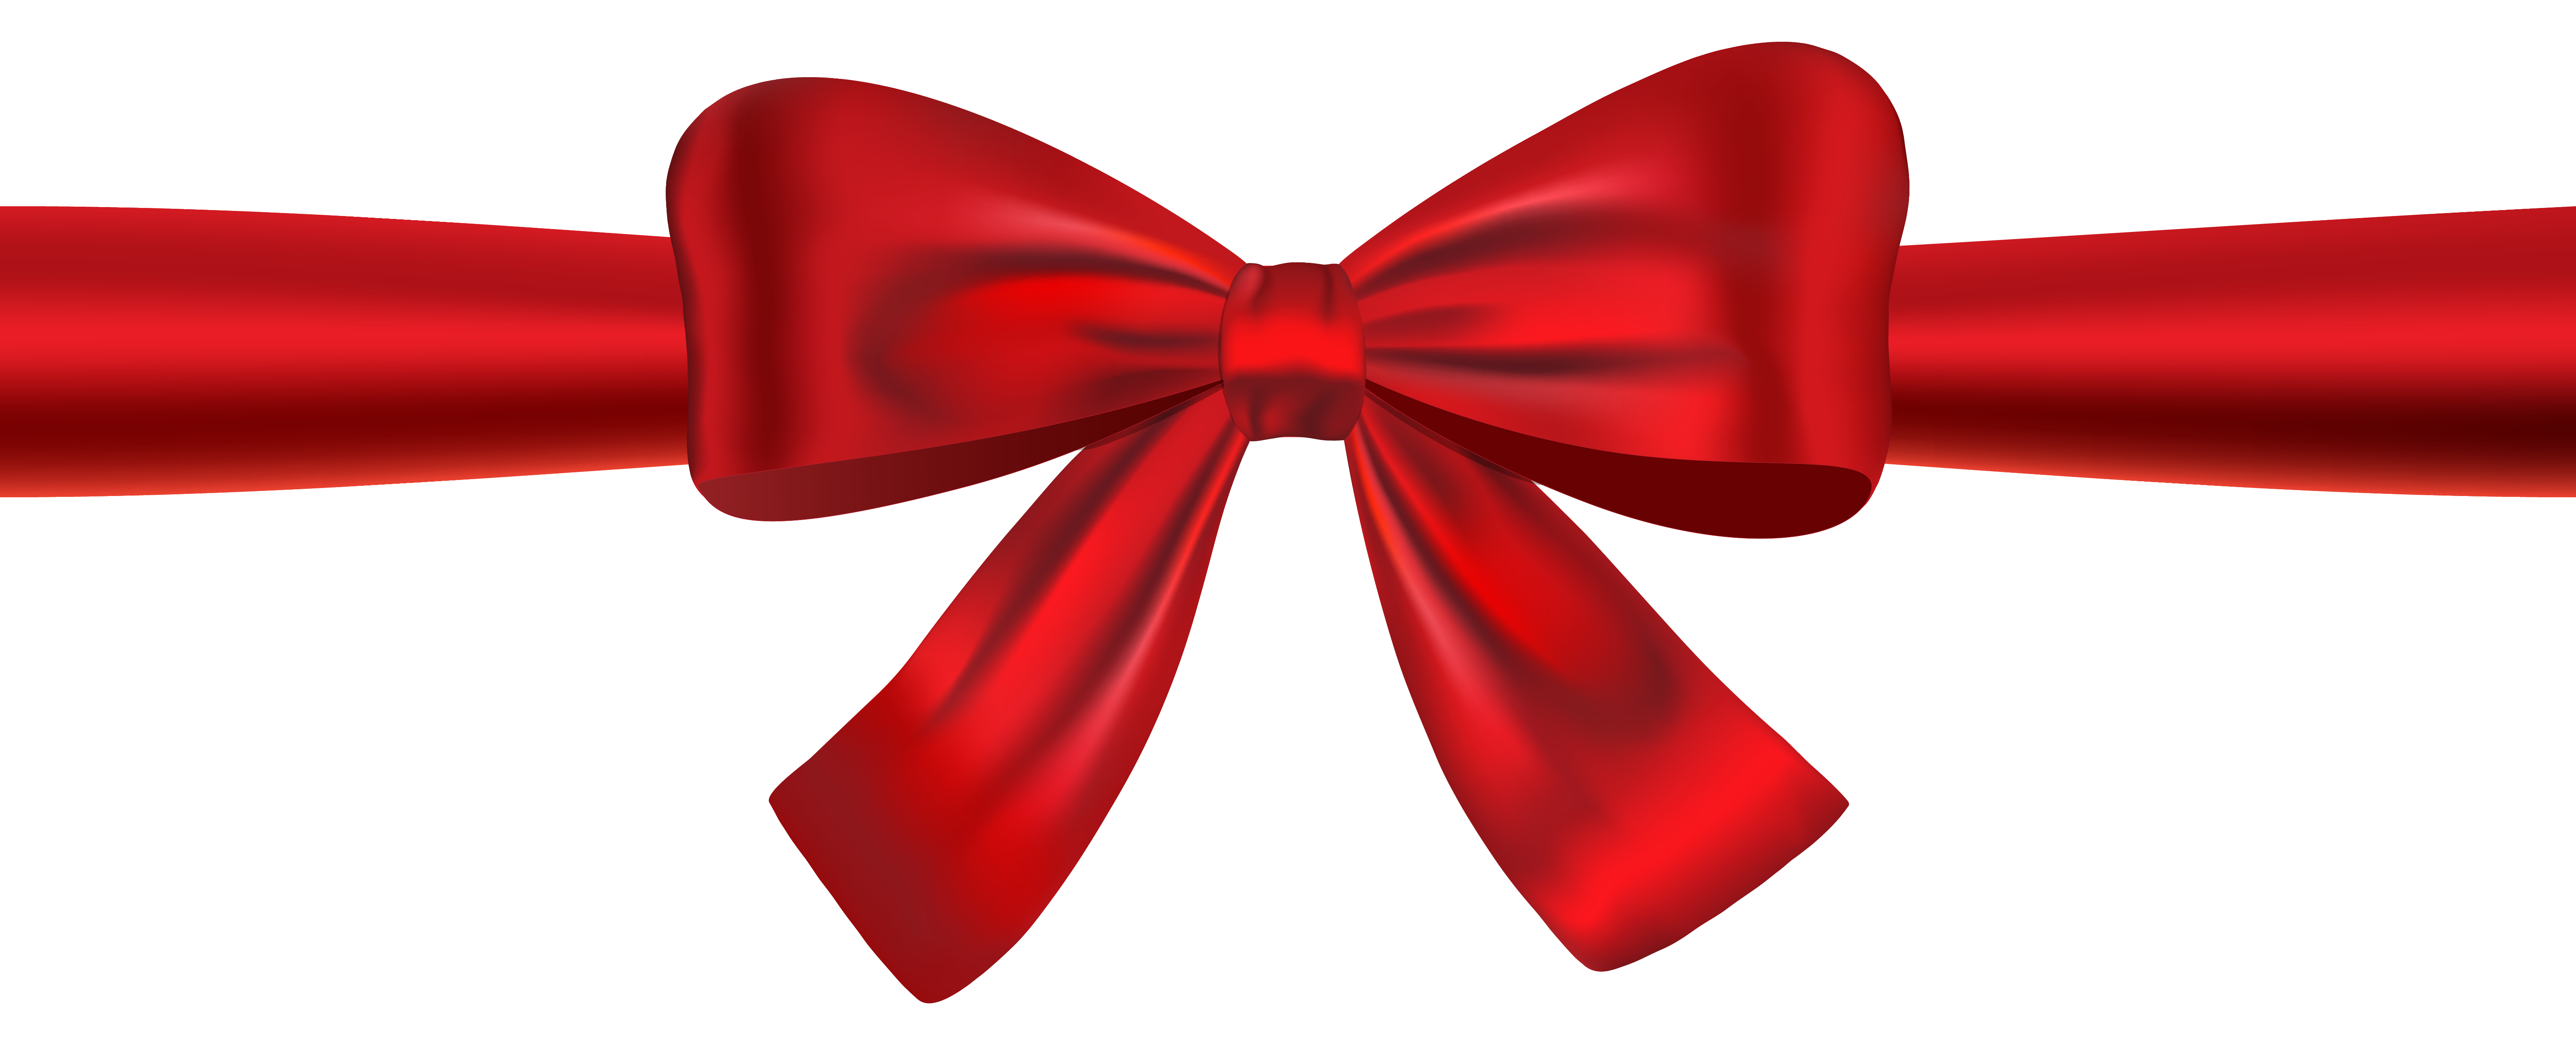 6110x2461 Red Bow Clip Art